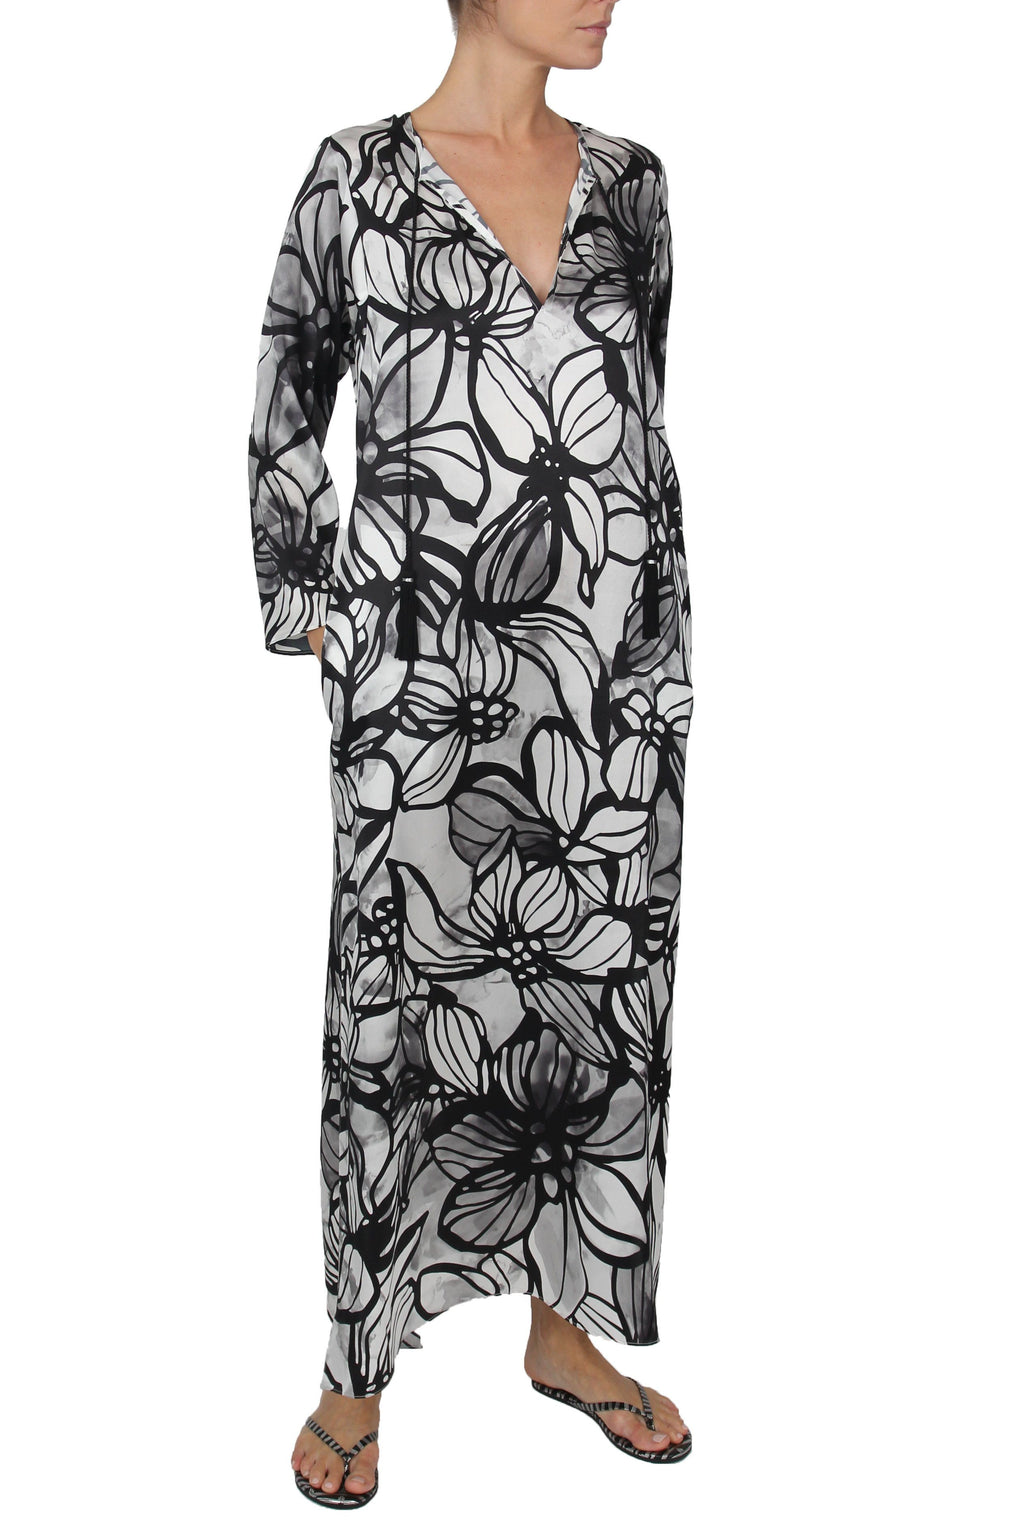 Long Hammer Dress Caftans Marie France Van Damme 0 Hibiscus White Black